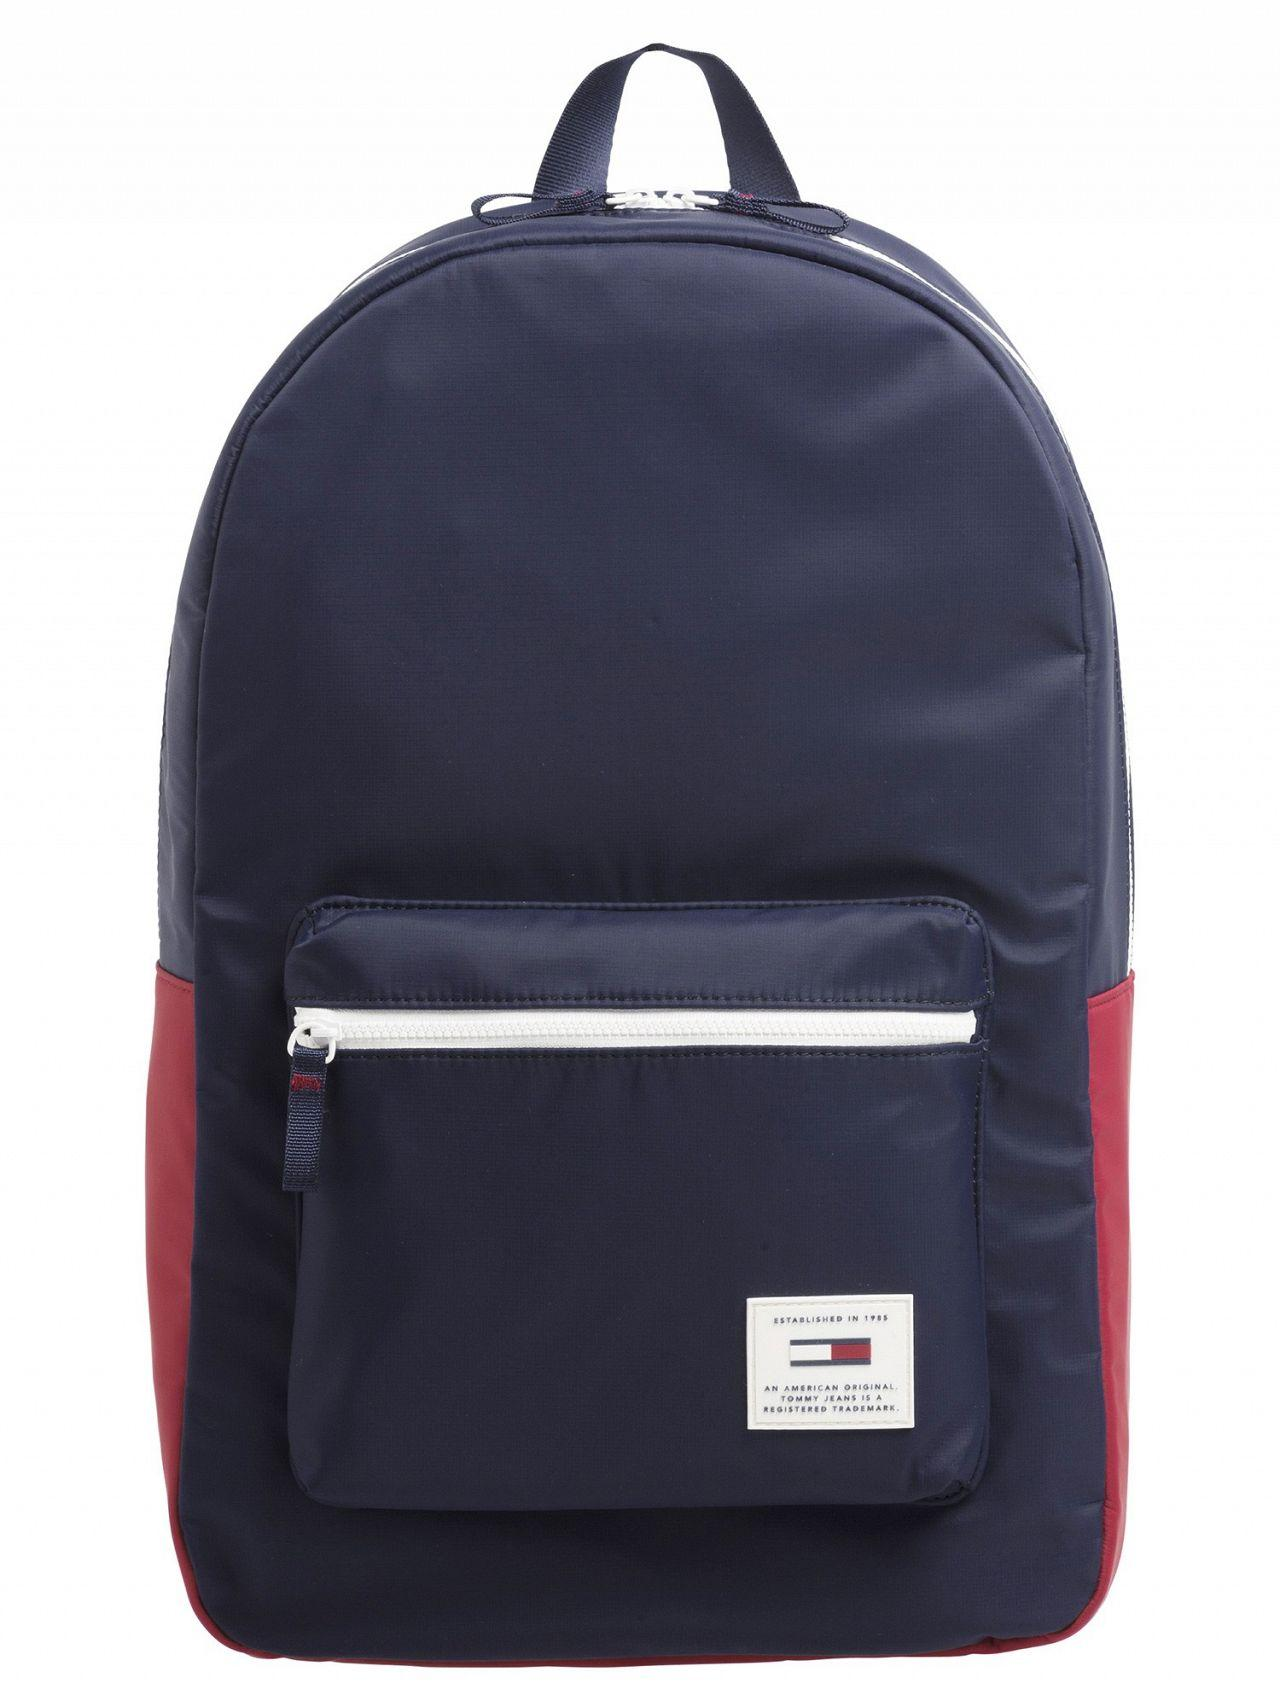 6c51e2b8348c9a Tommy Hilfiger Urban Tech Backpack in Blue for Men - Save 37% - Lyst